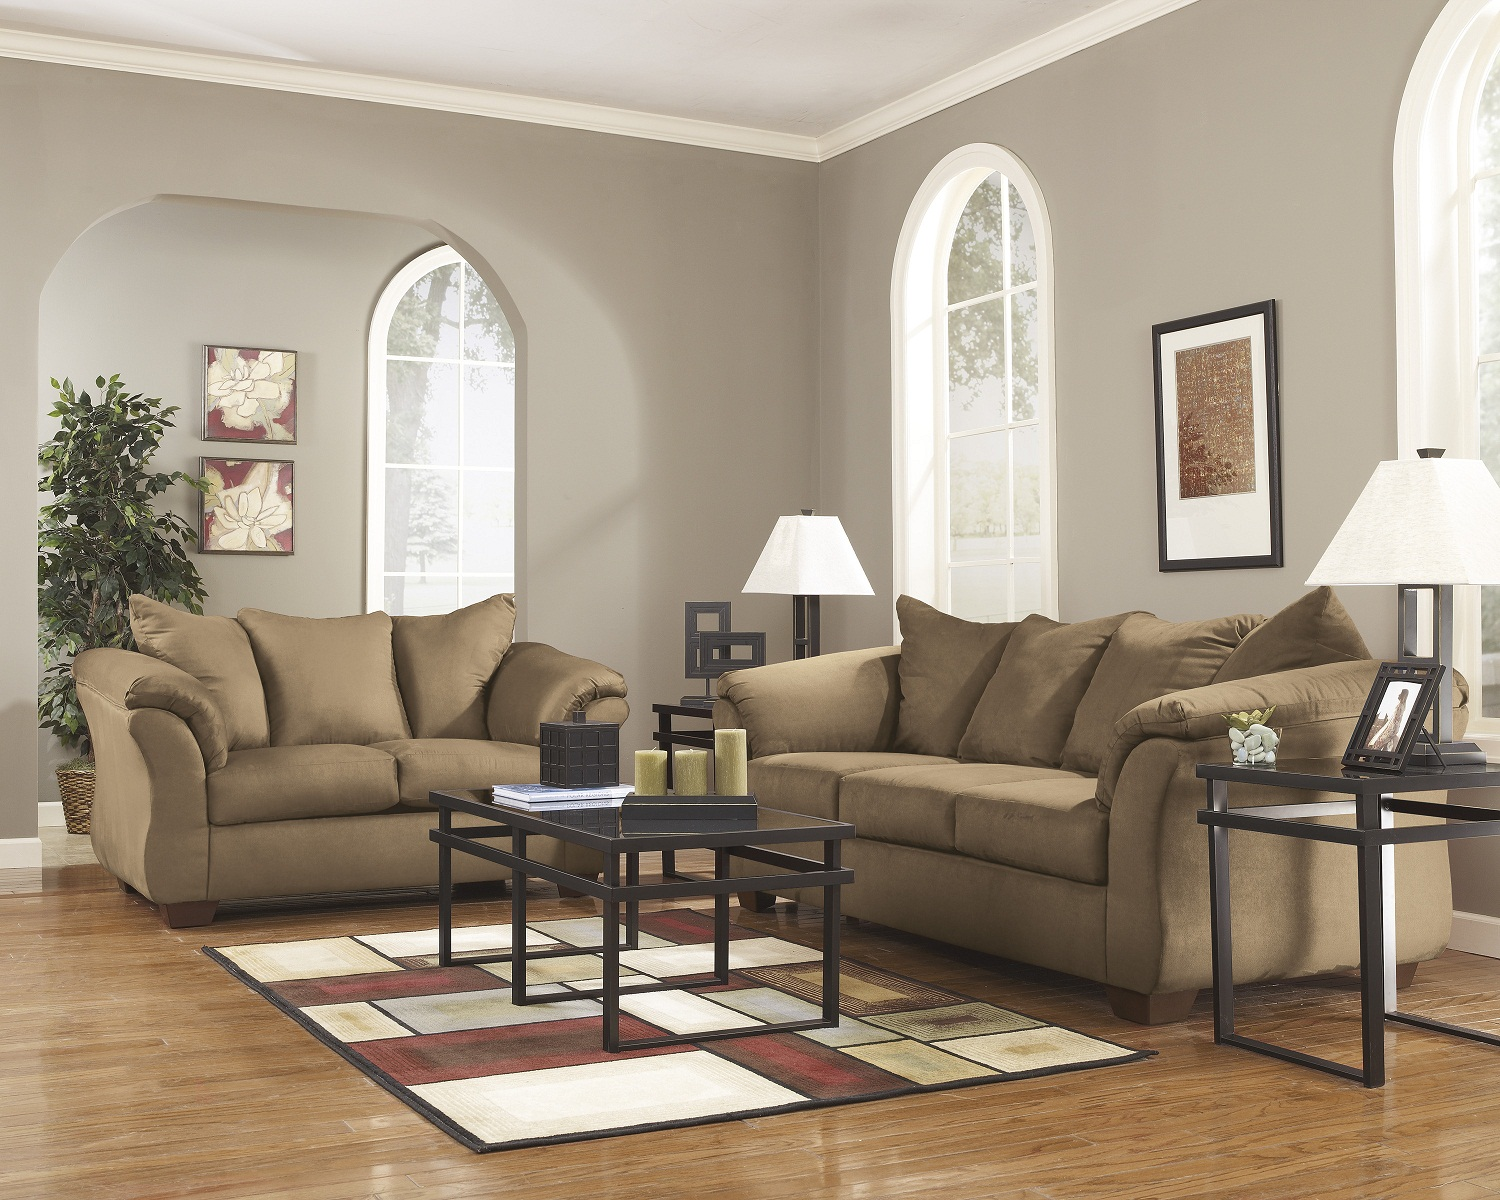 ashley red leather sofa corner uk cheap 4-piece darcy living room set in mocha